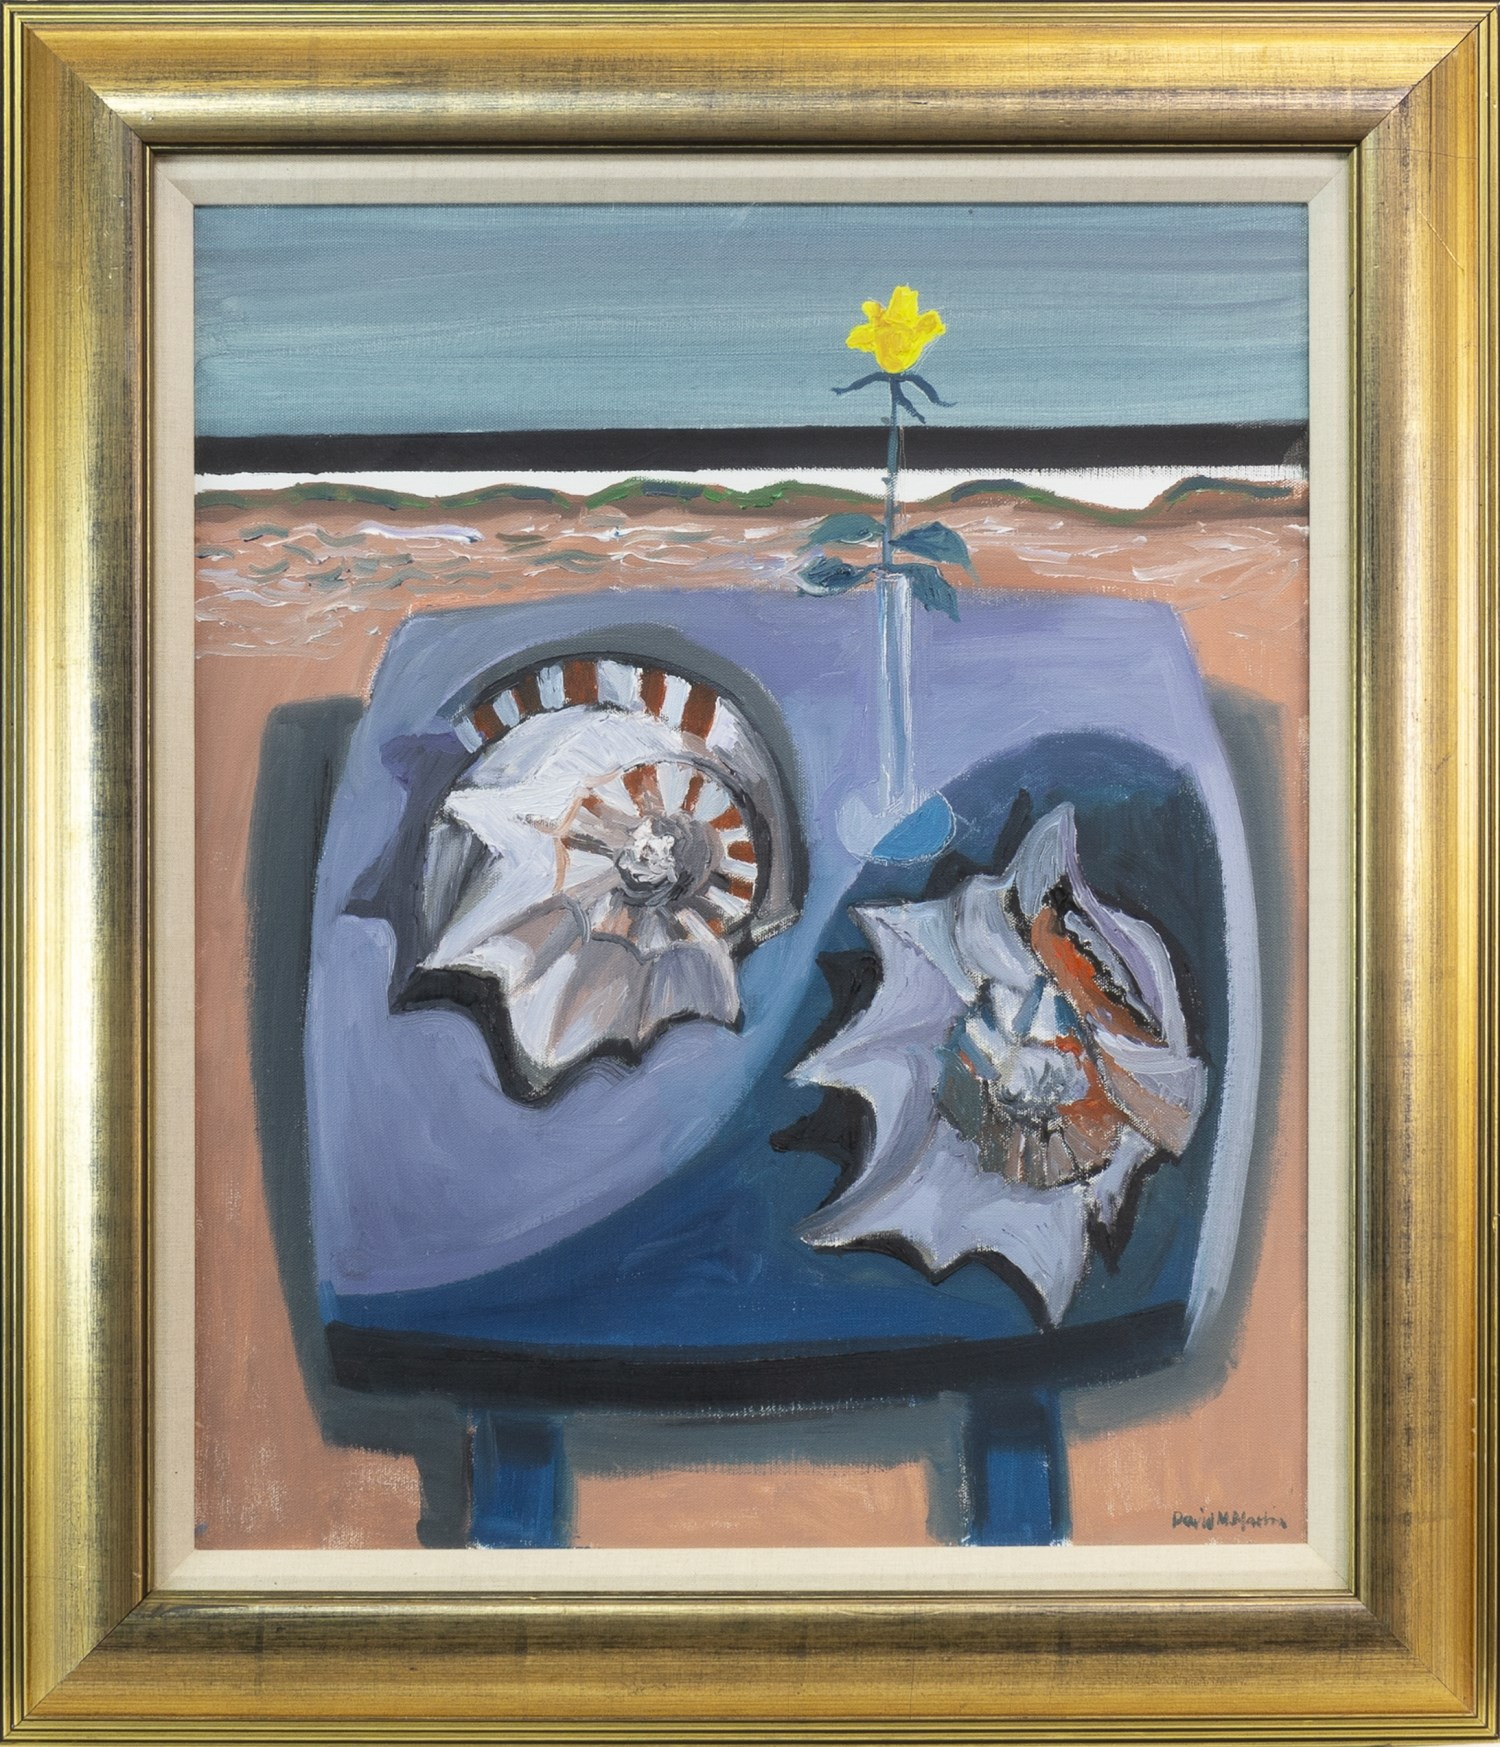 Lot 29 - BEACH TABLE WITH SHELLS, AN OIL ON CANVAS BY DAVID M MARTIN